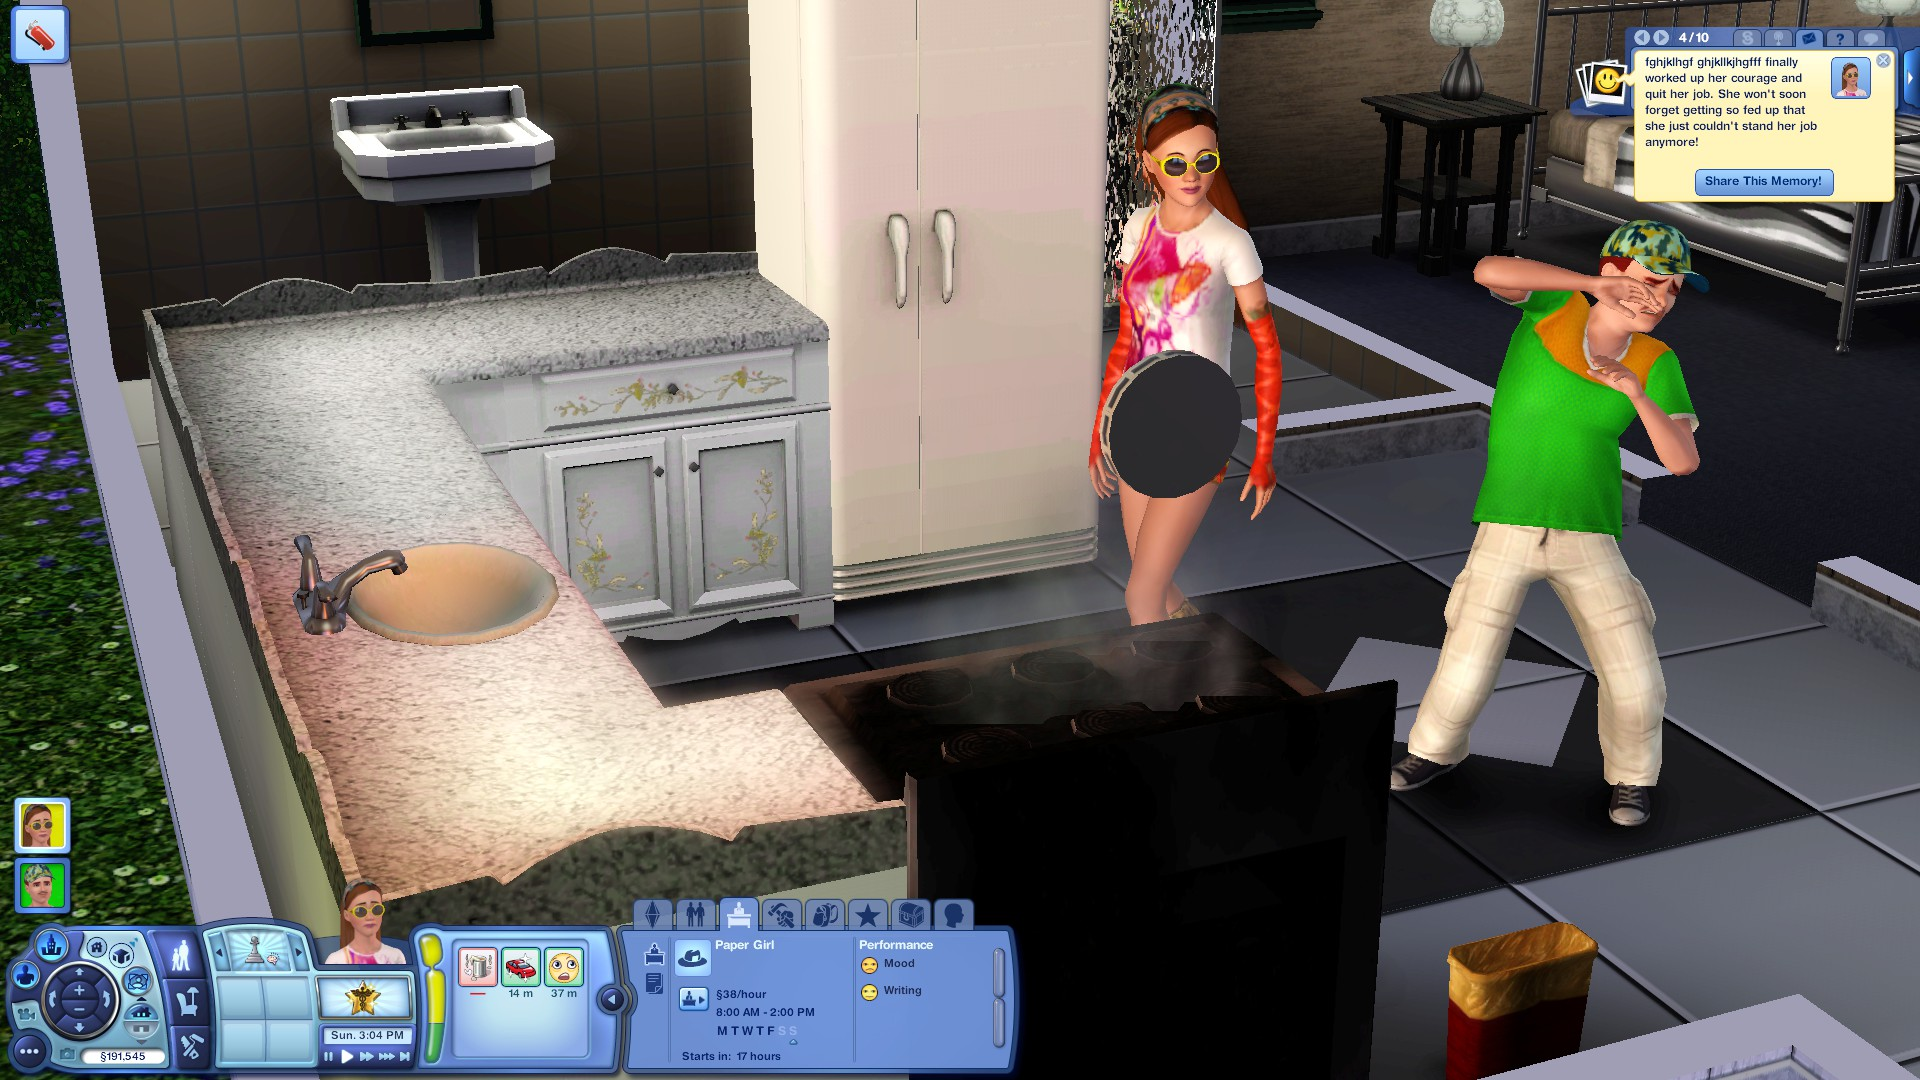 The sims 3 showtime free pussy dick  exposed videos